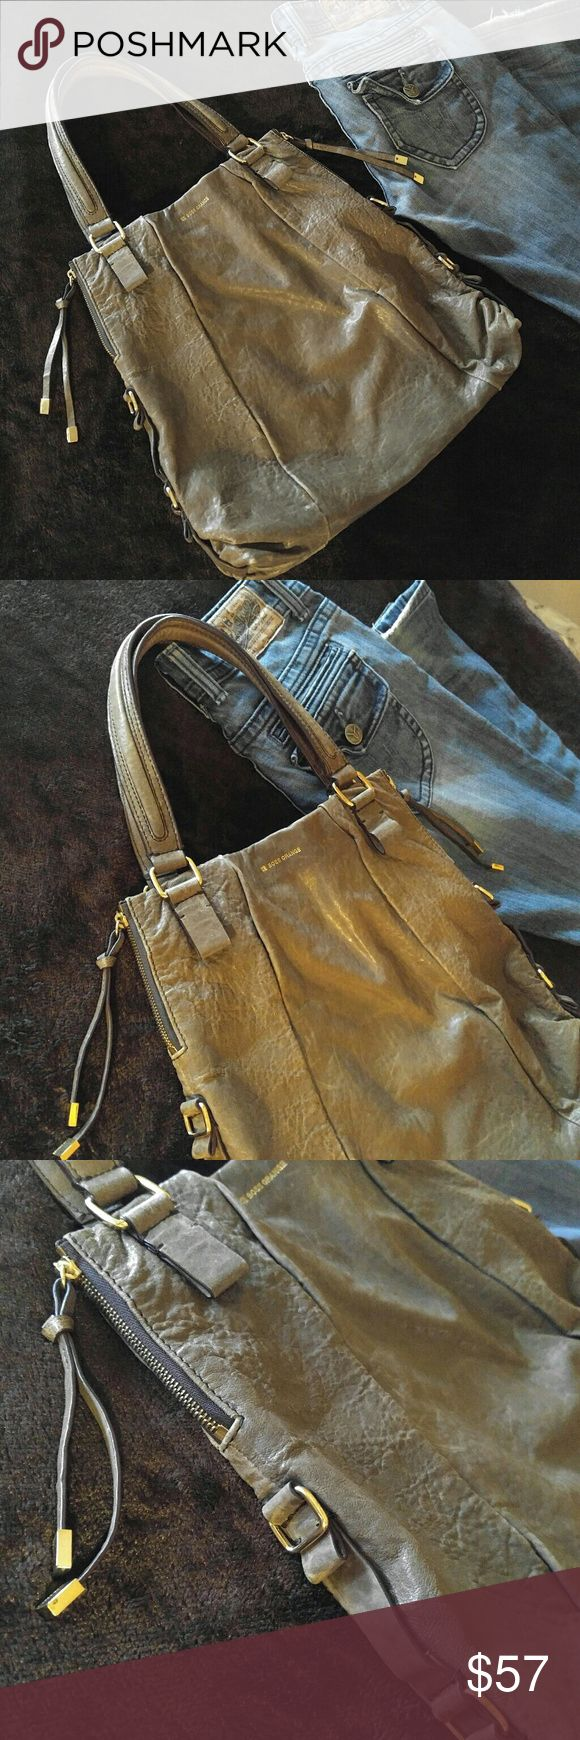 Authentic Hugo Boss Purse Bag Authentic Hugo Boss Purse bag from the Agathe Hugo line. Gorgeous Tan / Beige color. Genuine Grainy Lambskin-- 1 step above cowhide leather.  Gold metal embellishments on sides / side zippers.  Inside: 1 zip pocket, and 2 open pockets. Snap closure. Absolutely NOTHING wrong with bag. Gently used. YEARS of life left in this bag! Last pic shown is from the Hugo Boss website showing this Agathe Line shoulder bag compliment. Exact same material. Posted to see…